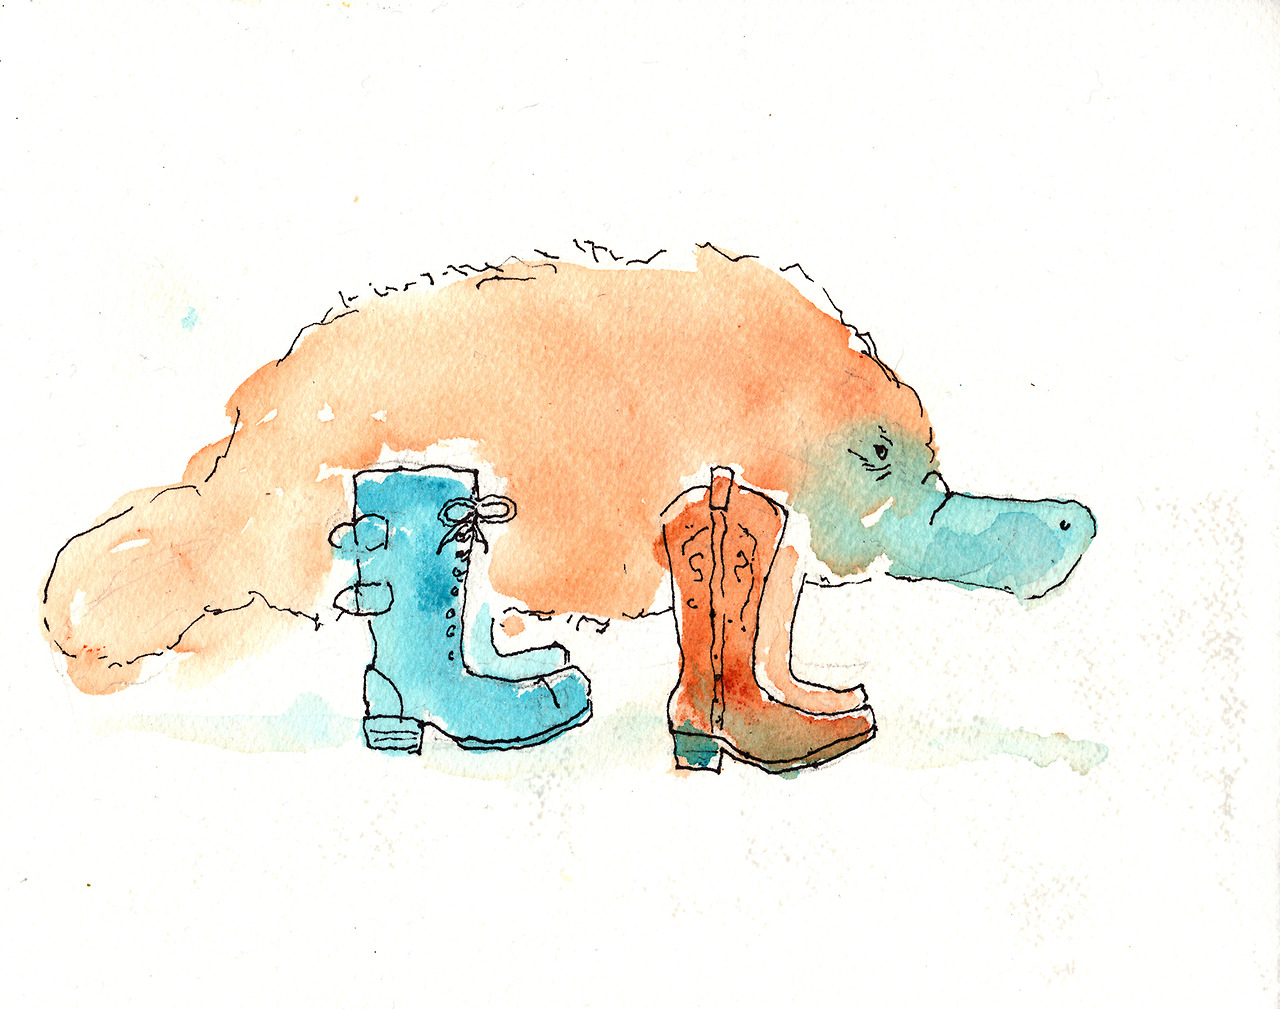 8/31/13 -  Platypus In Boots .   Today's is especially stupid, even for me. And I wanted to do something in two colors. Then I cheated and added black sharpie because it's America and I can do things like that.   Buy it here -  http://taylorwinder.bigcartel.com    Prints here -  http://society6.com/taylorwinder